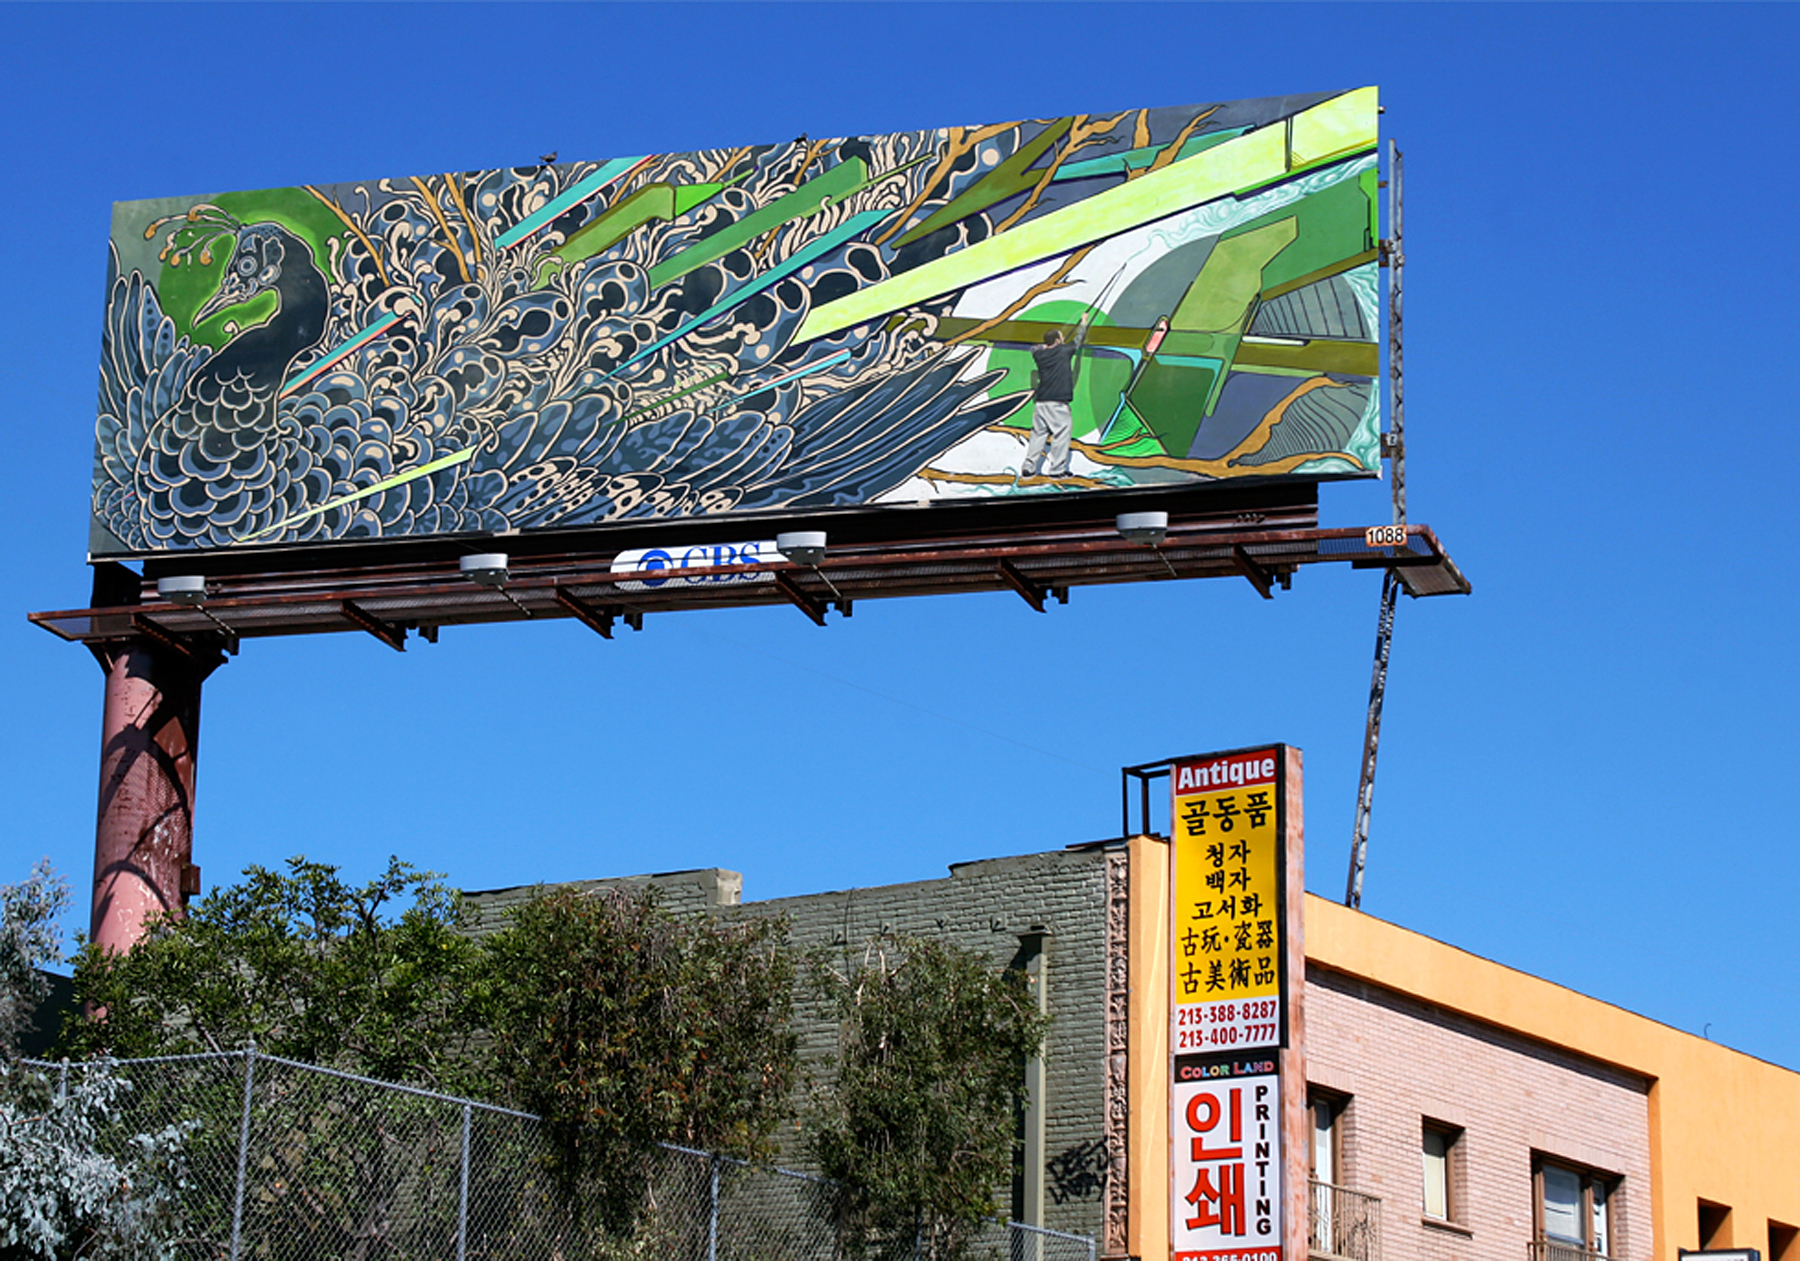 Christopher Brand, Evan Skrederstu, Steve Martinez, Jose Lopez.  #PublicWorks Billboard Project.  2012.